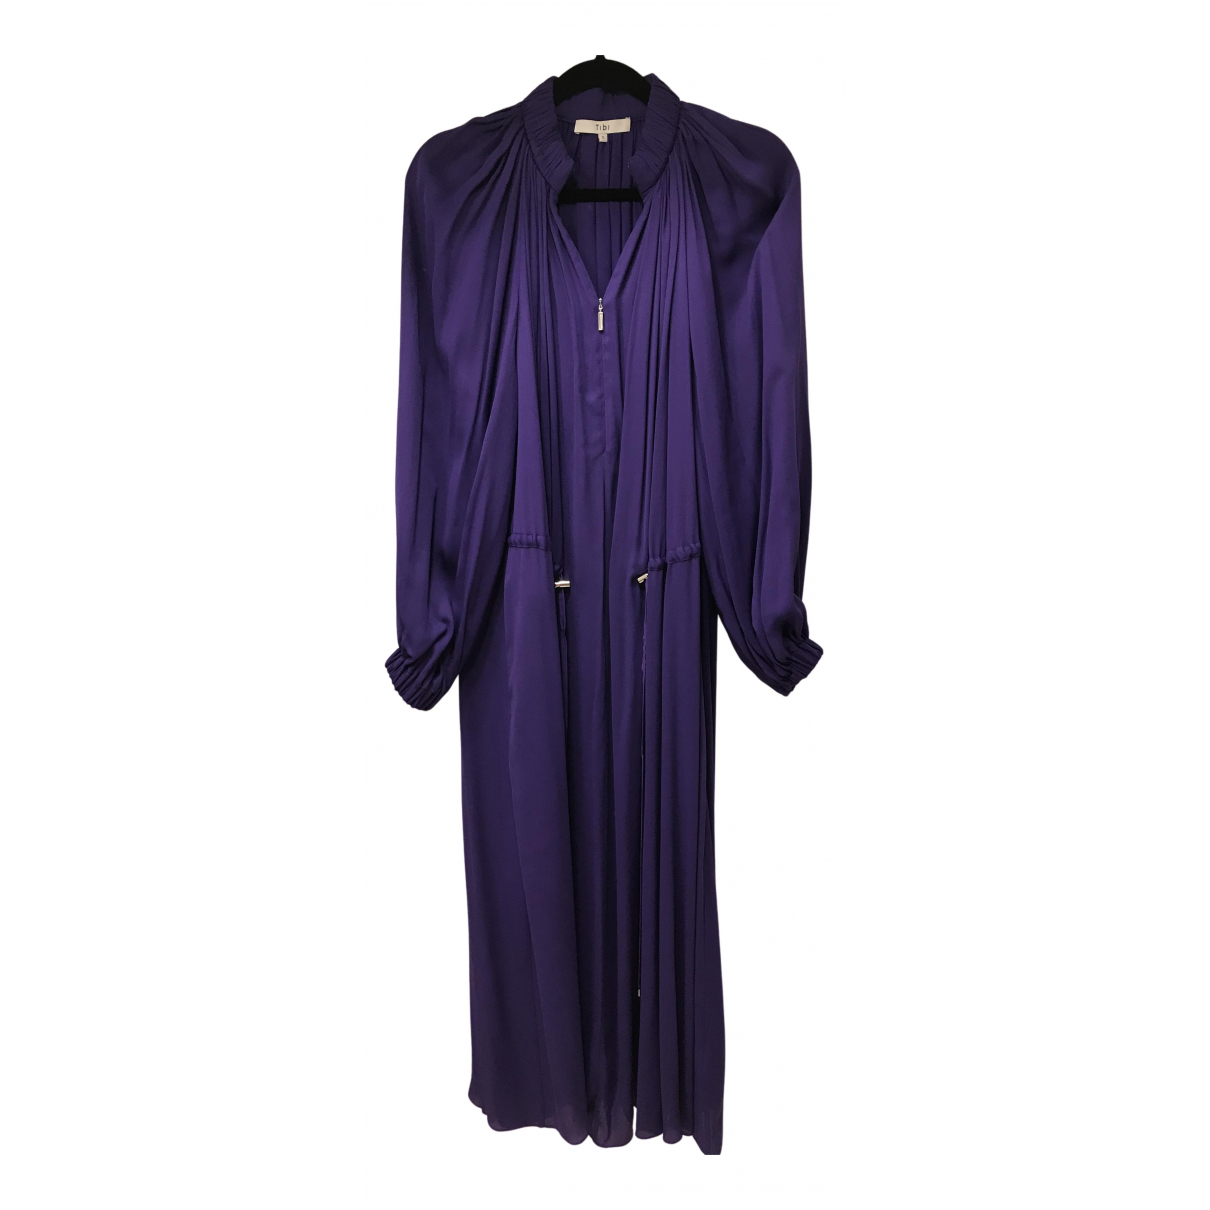 Tibi N Purple dress for Women S International